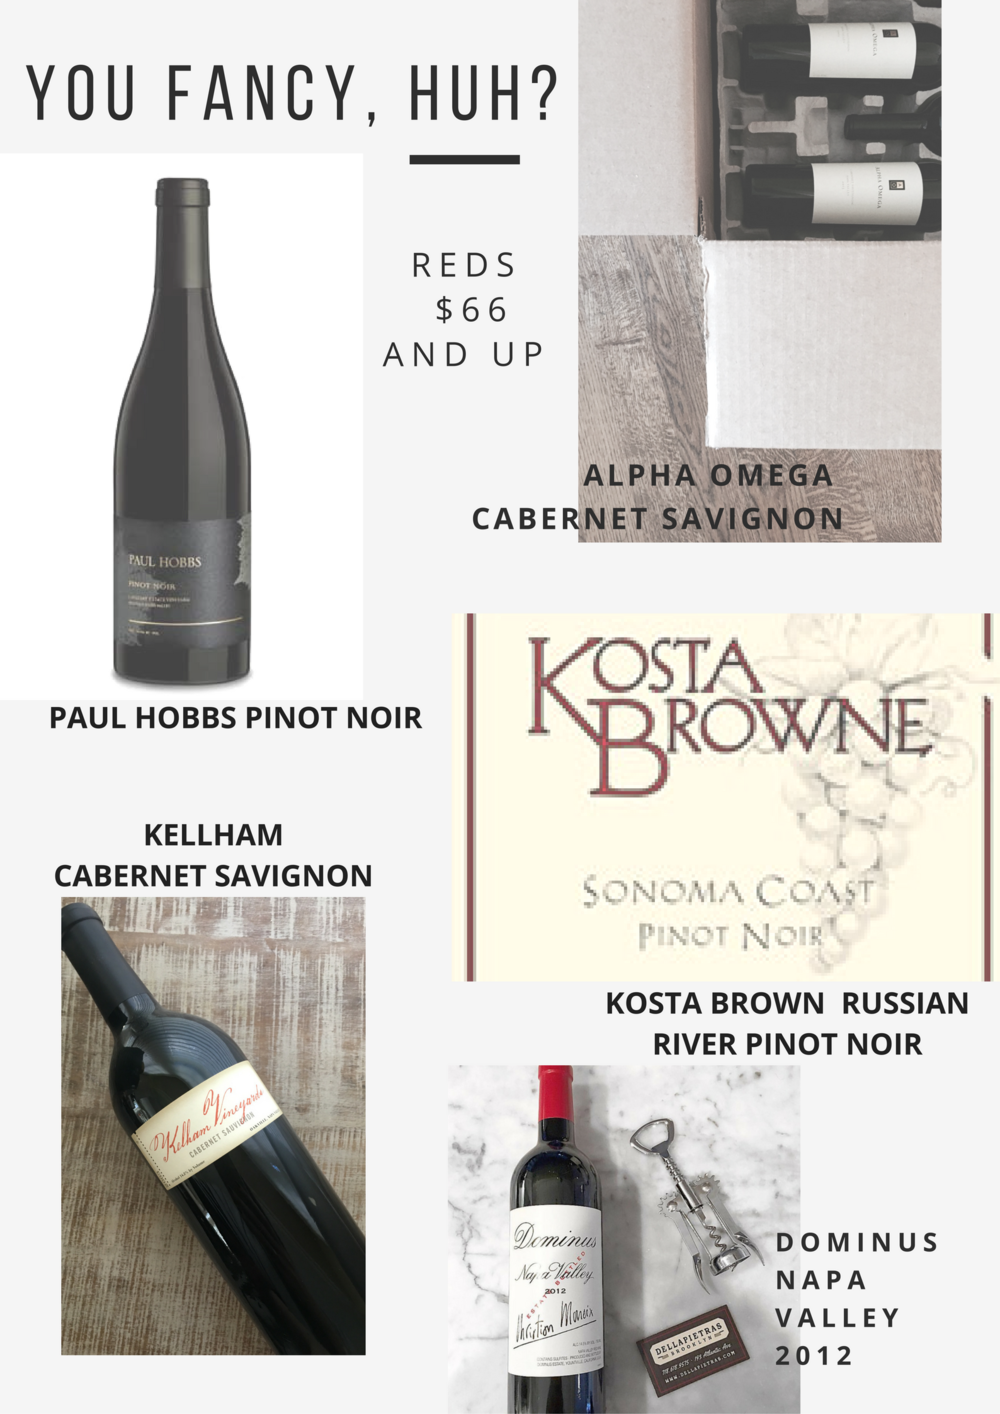 Special Occassion Red Wines